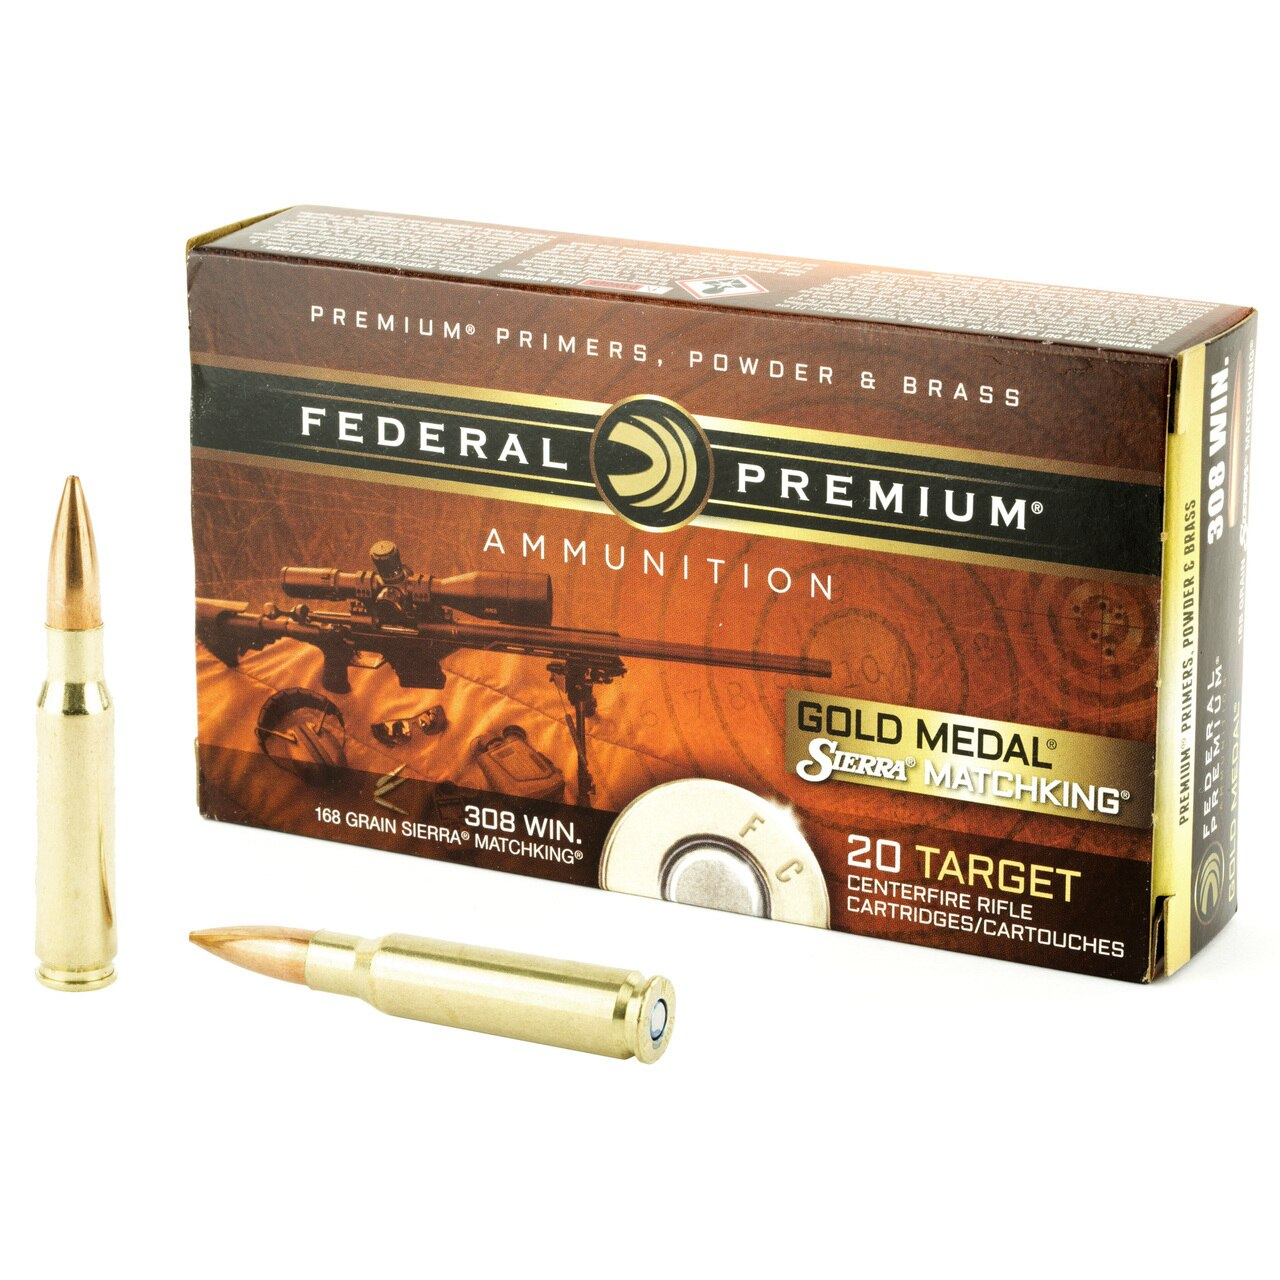 Federal Gold Medal Match, 308 Winchester, 168 Grain, Boat Tail, Hollow  Point  20 Round Box - $15 94